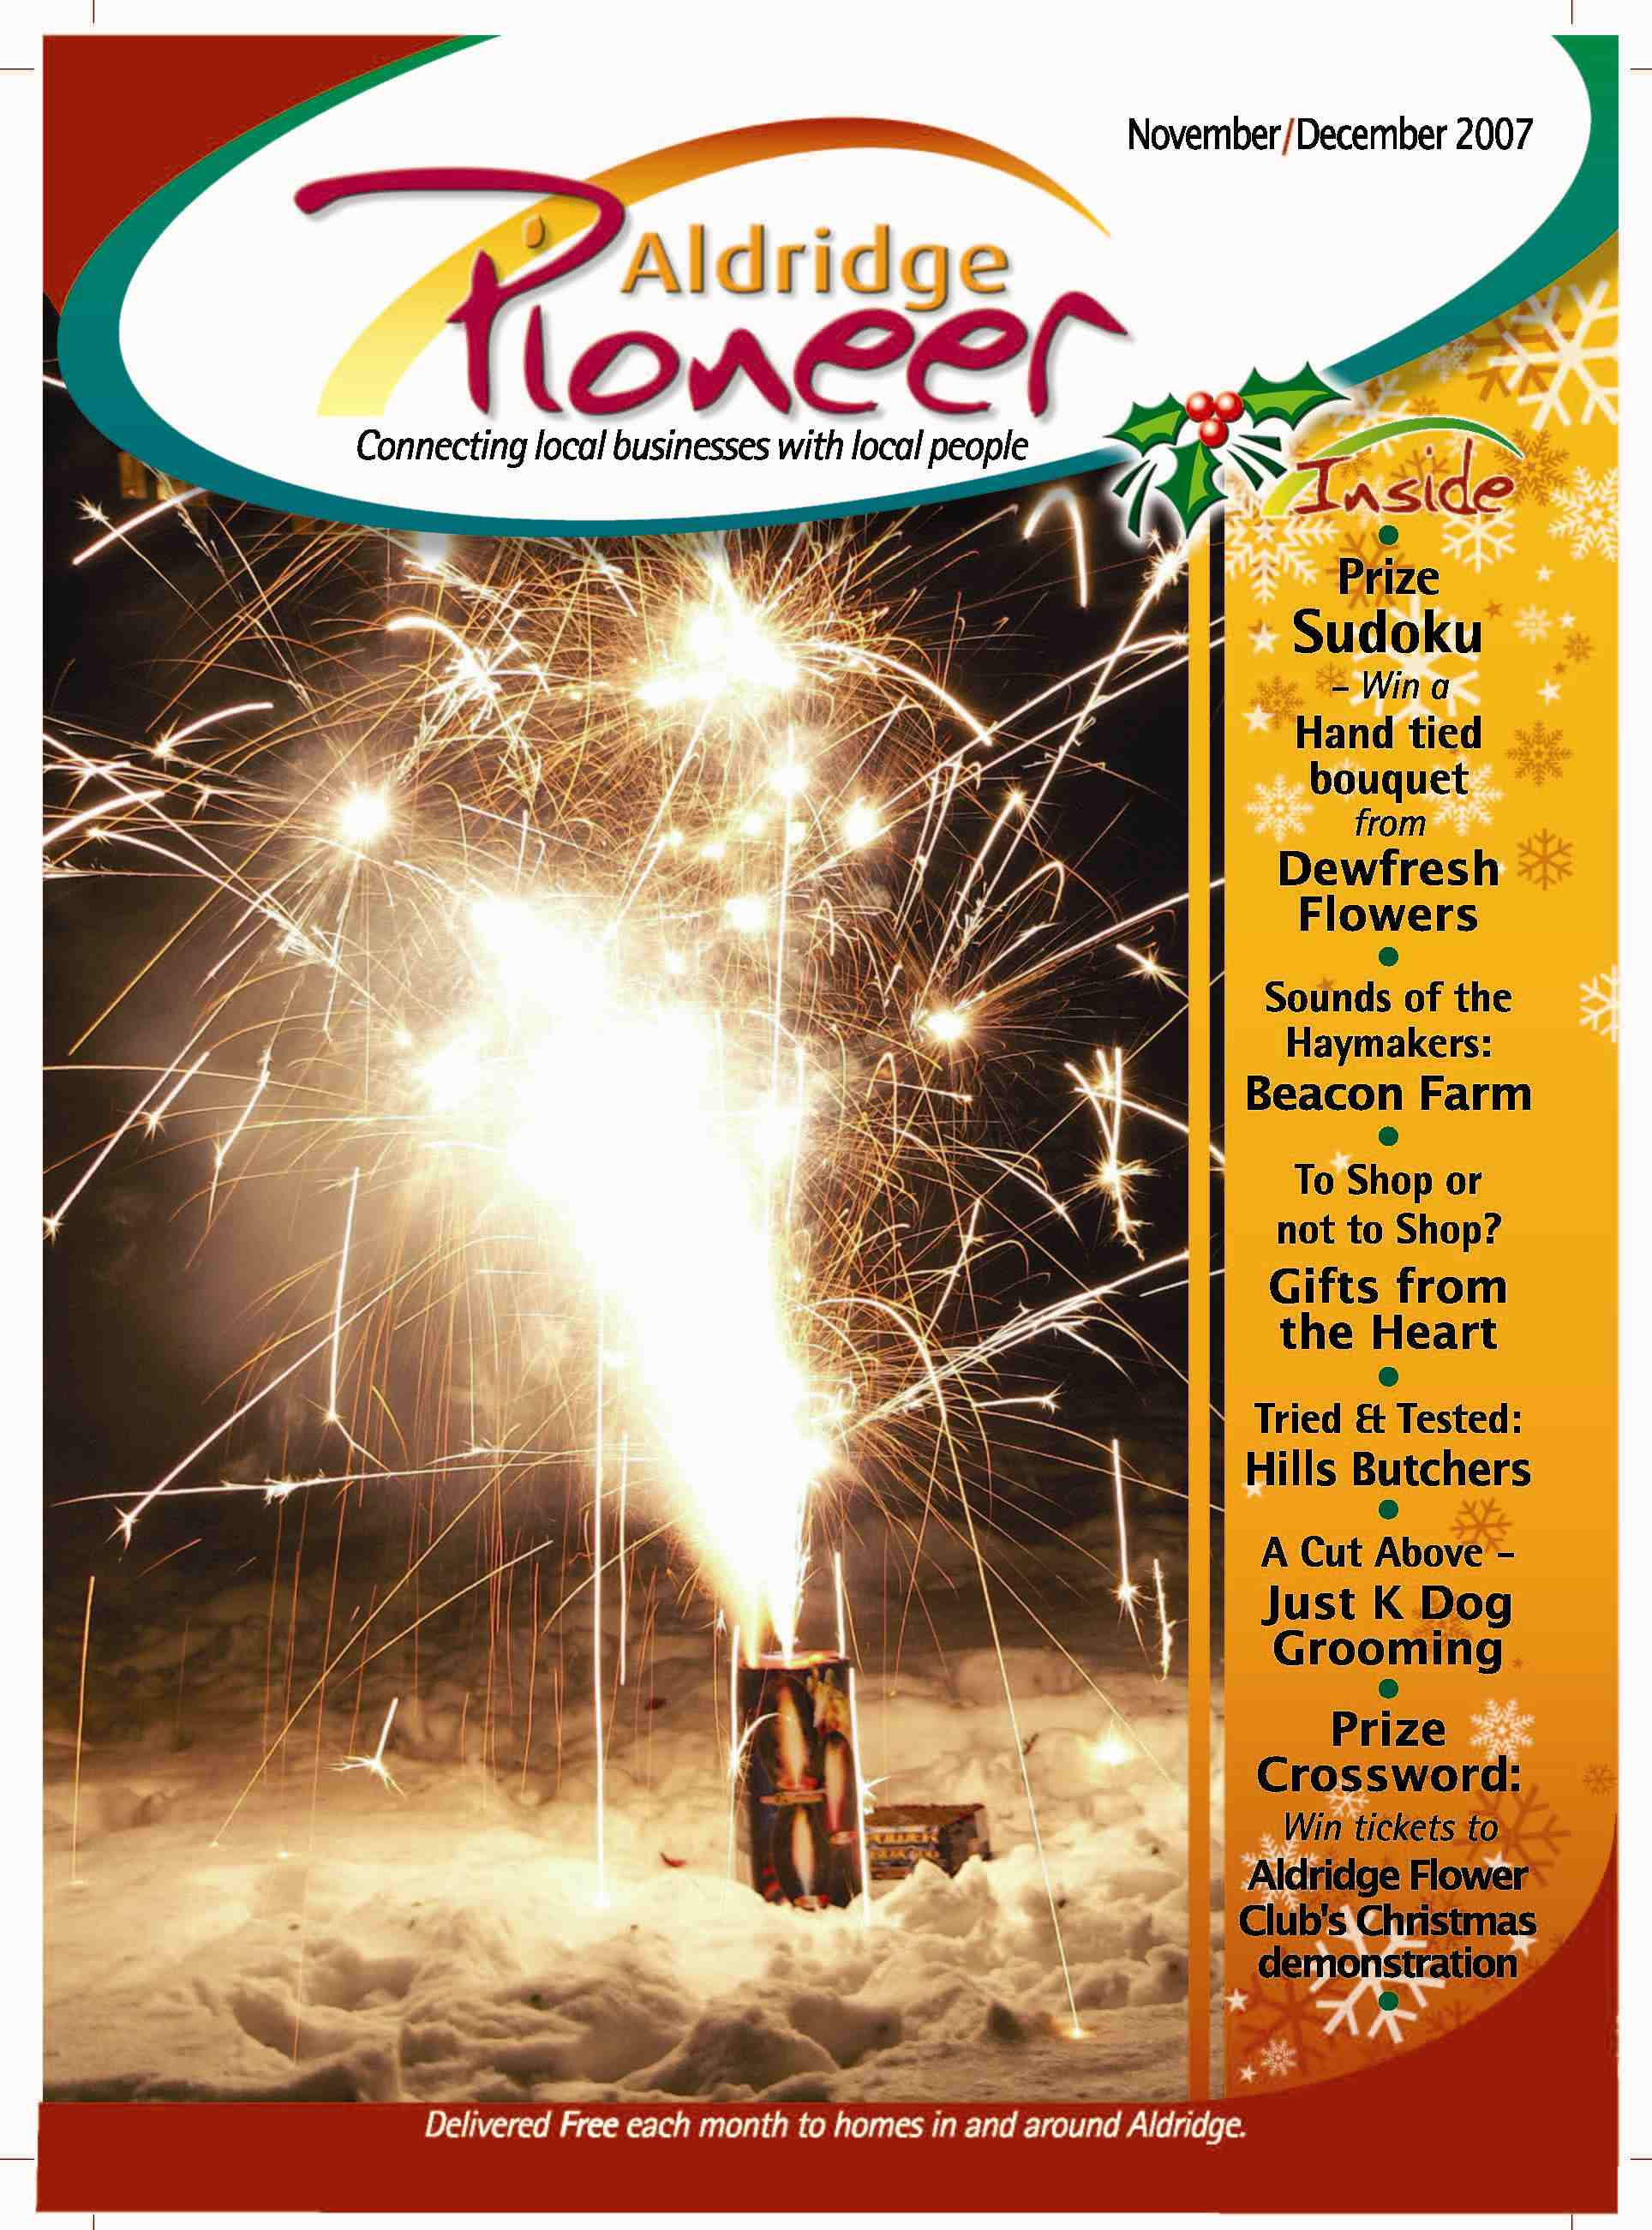 November 2007 Edition of Aldridge Pioneer Magazine